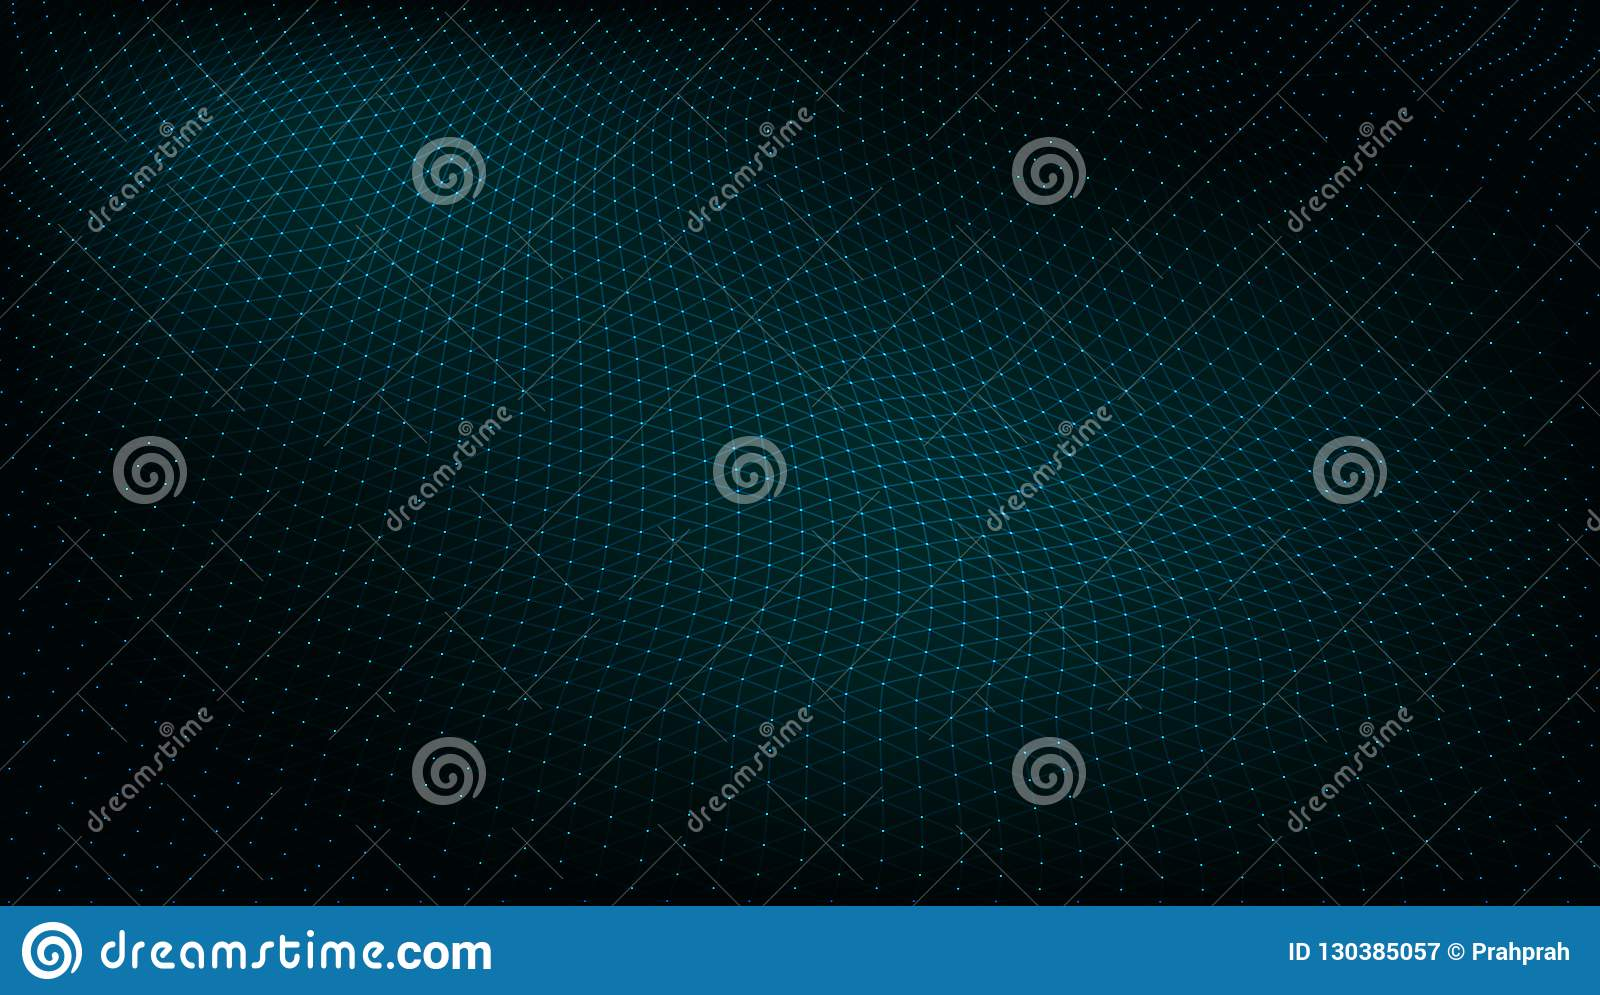 Abstract Dark Techno Low Poly Space  Dots And Lines Stock